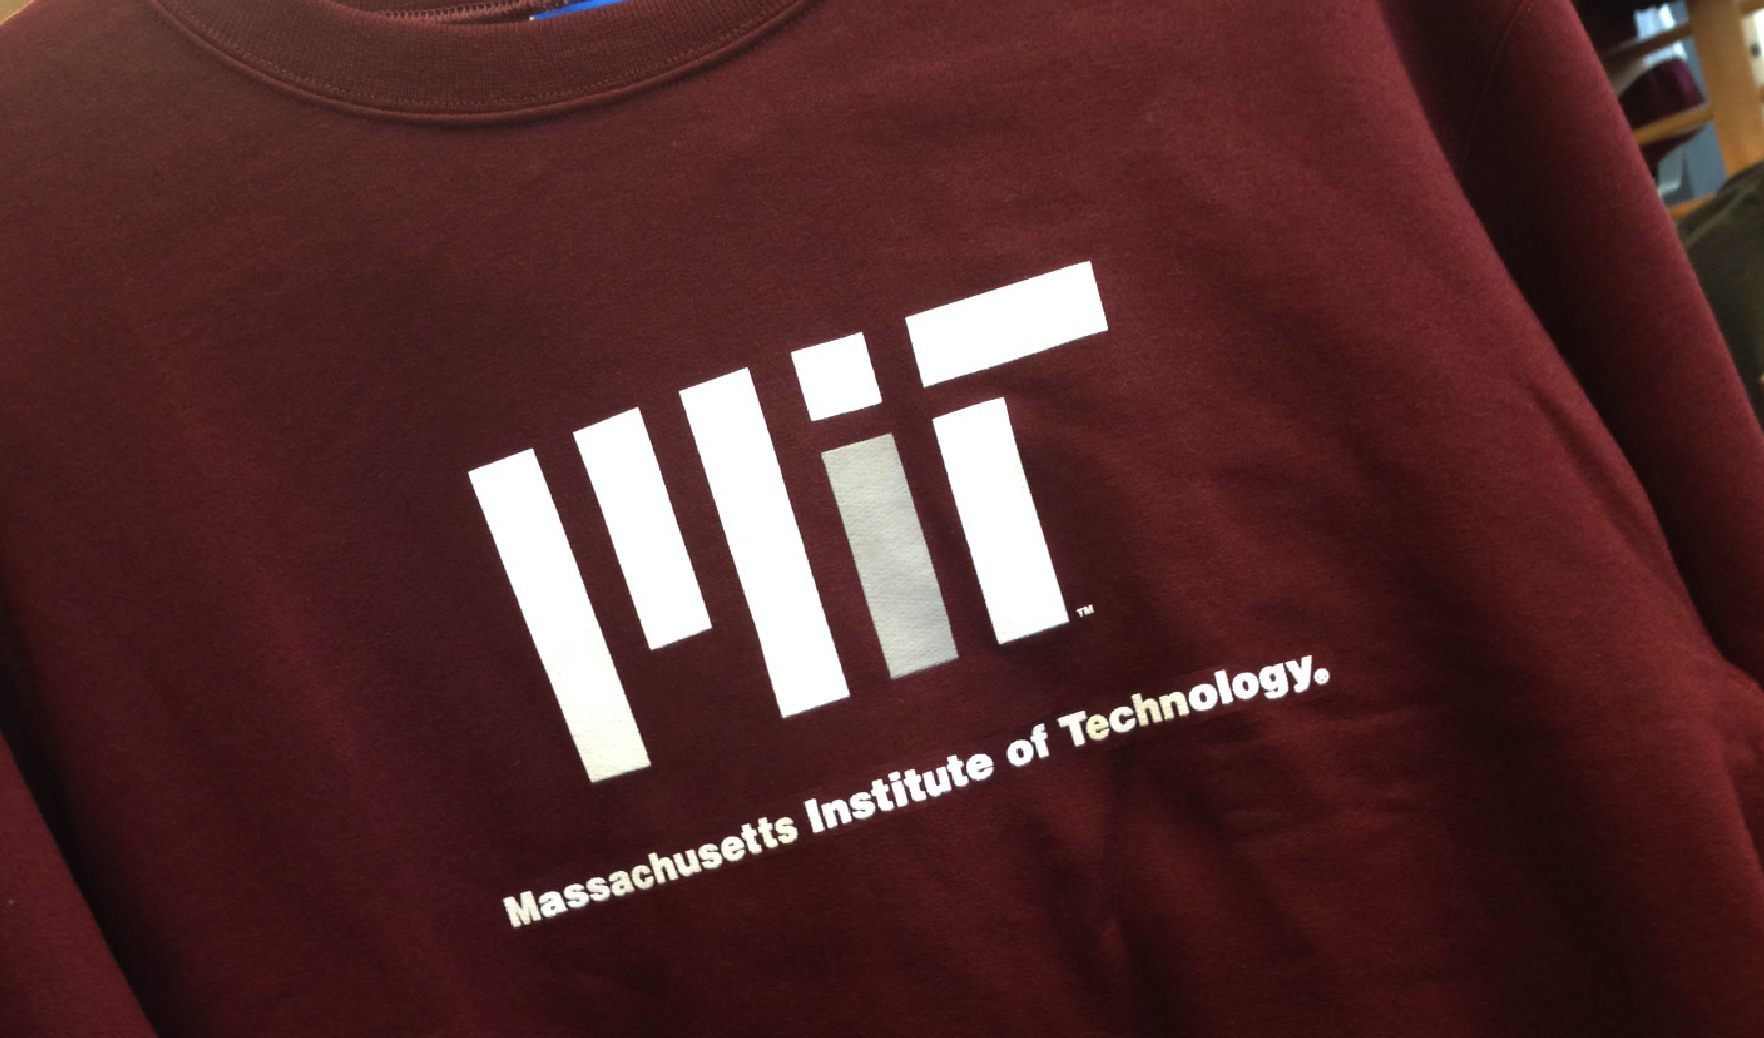 Sweatshirt with the MIT logo